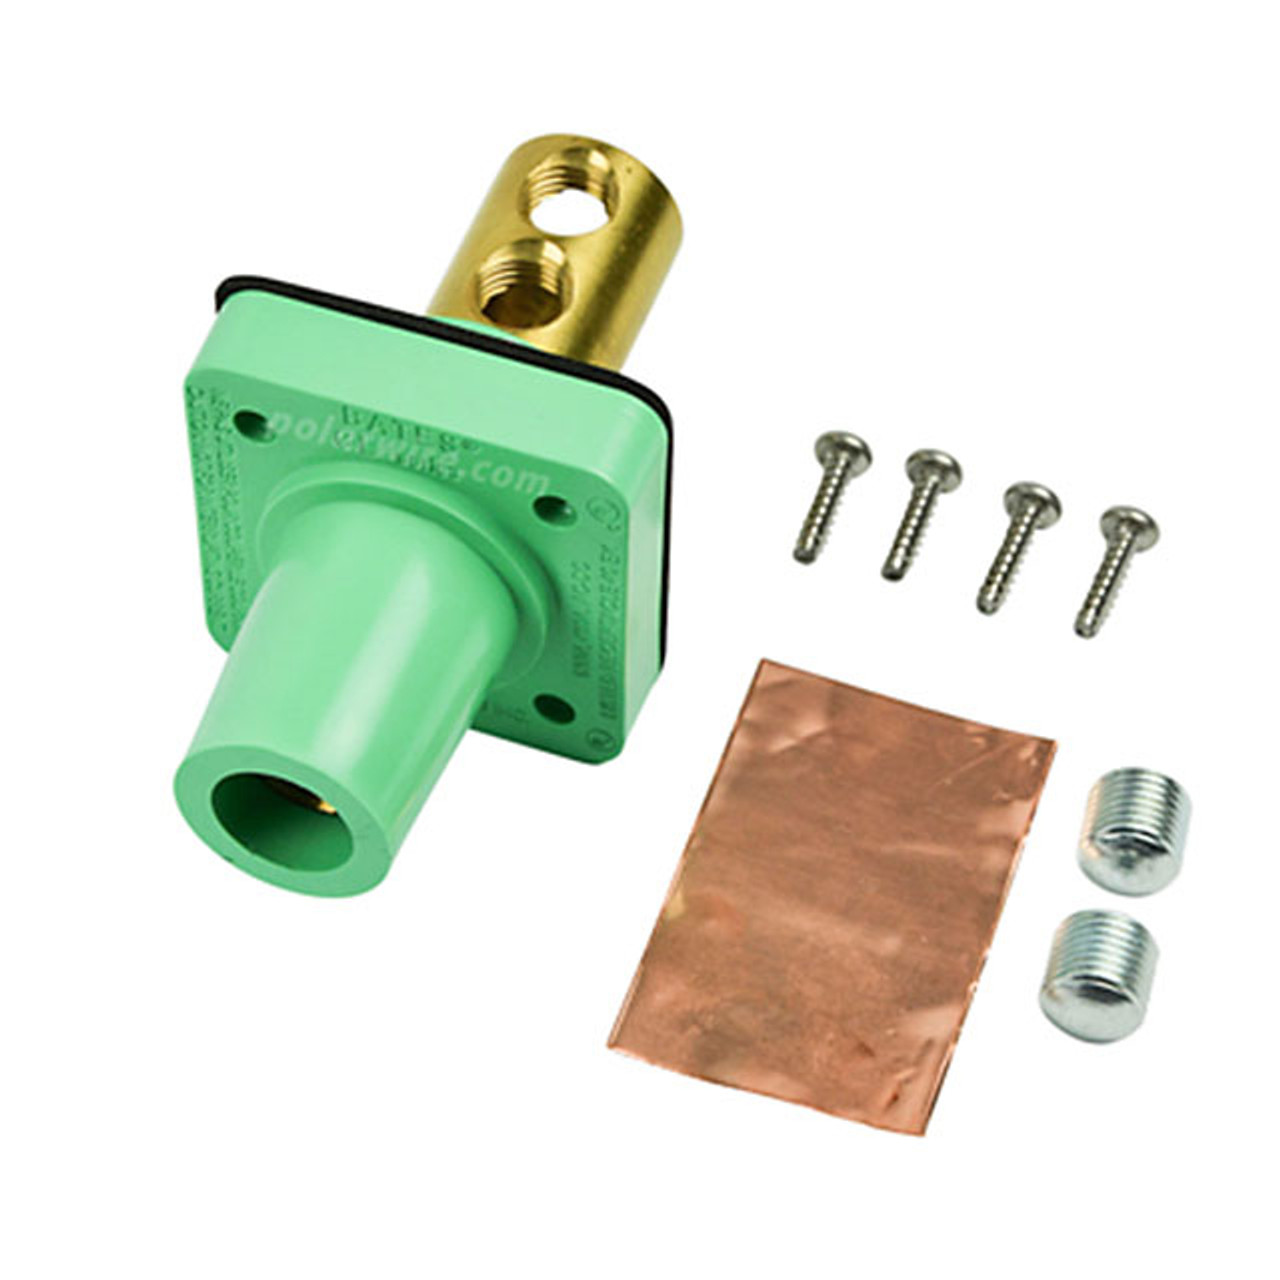 Marinco green 400A CL 16 Series female single pin panel mount cam lock connector with set screw for 2/0-4/0 AWG cable